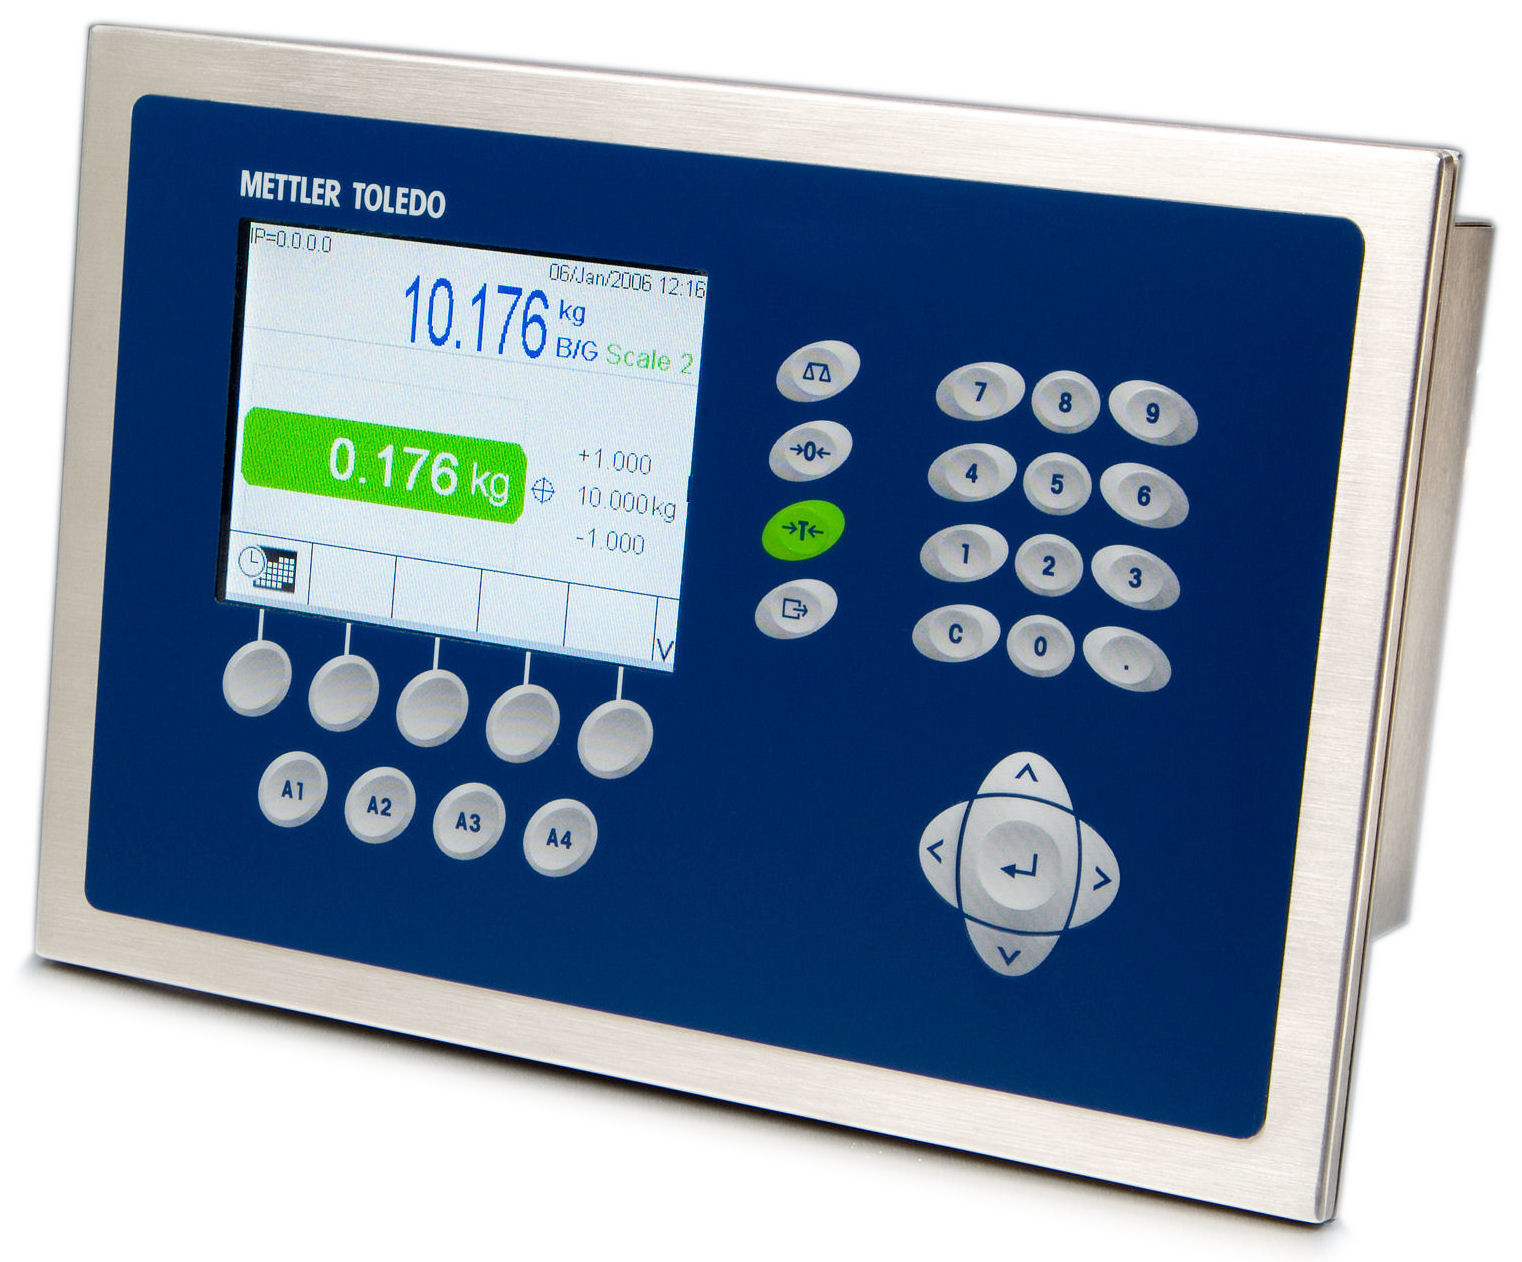 mettler toledo rm40 user manual